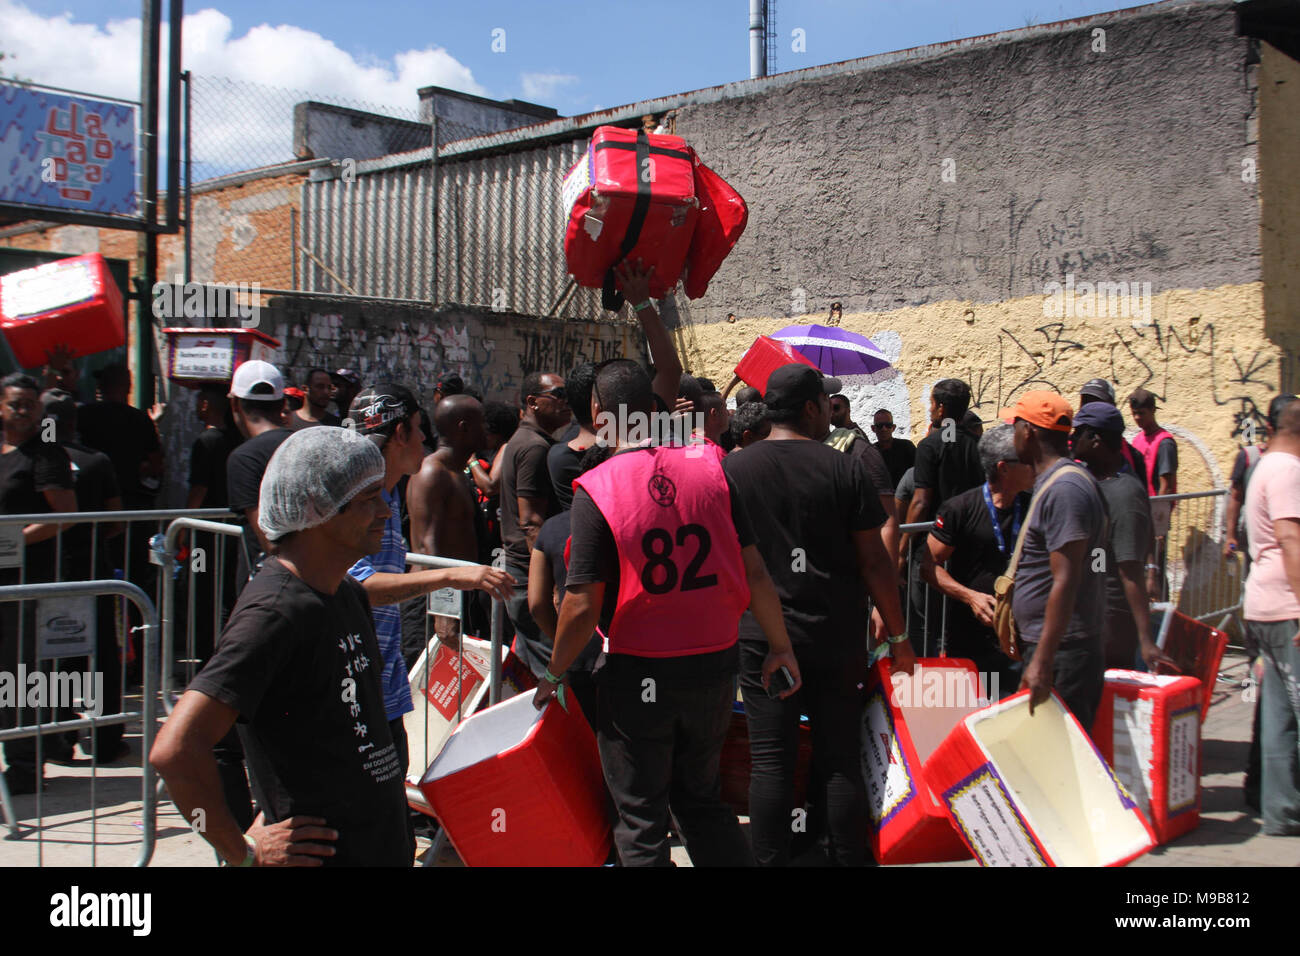 Sao Paulo, Brazil. 24th Mar, 2018. Local police confiscates foods, drinks and products during the event at Jose Carlos Pace Autodrome Interlagos. There were many policemen with their motorcycles, cars at the local to maintain order. Credit: Niyi Fote/Pacific Press/Alamy Live News - Stock Image